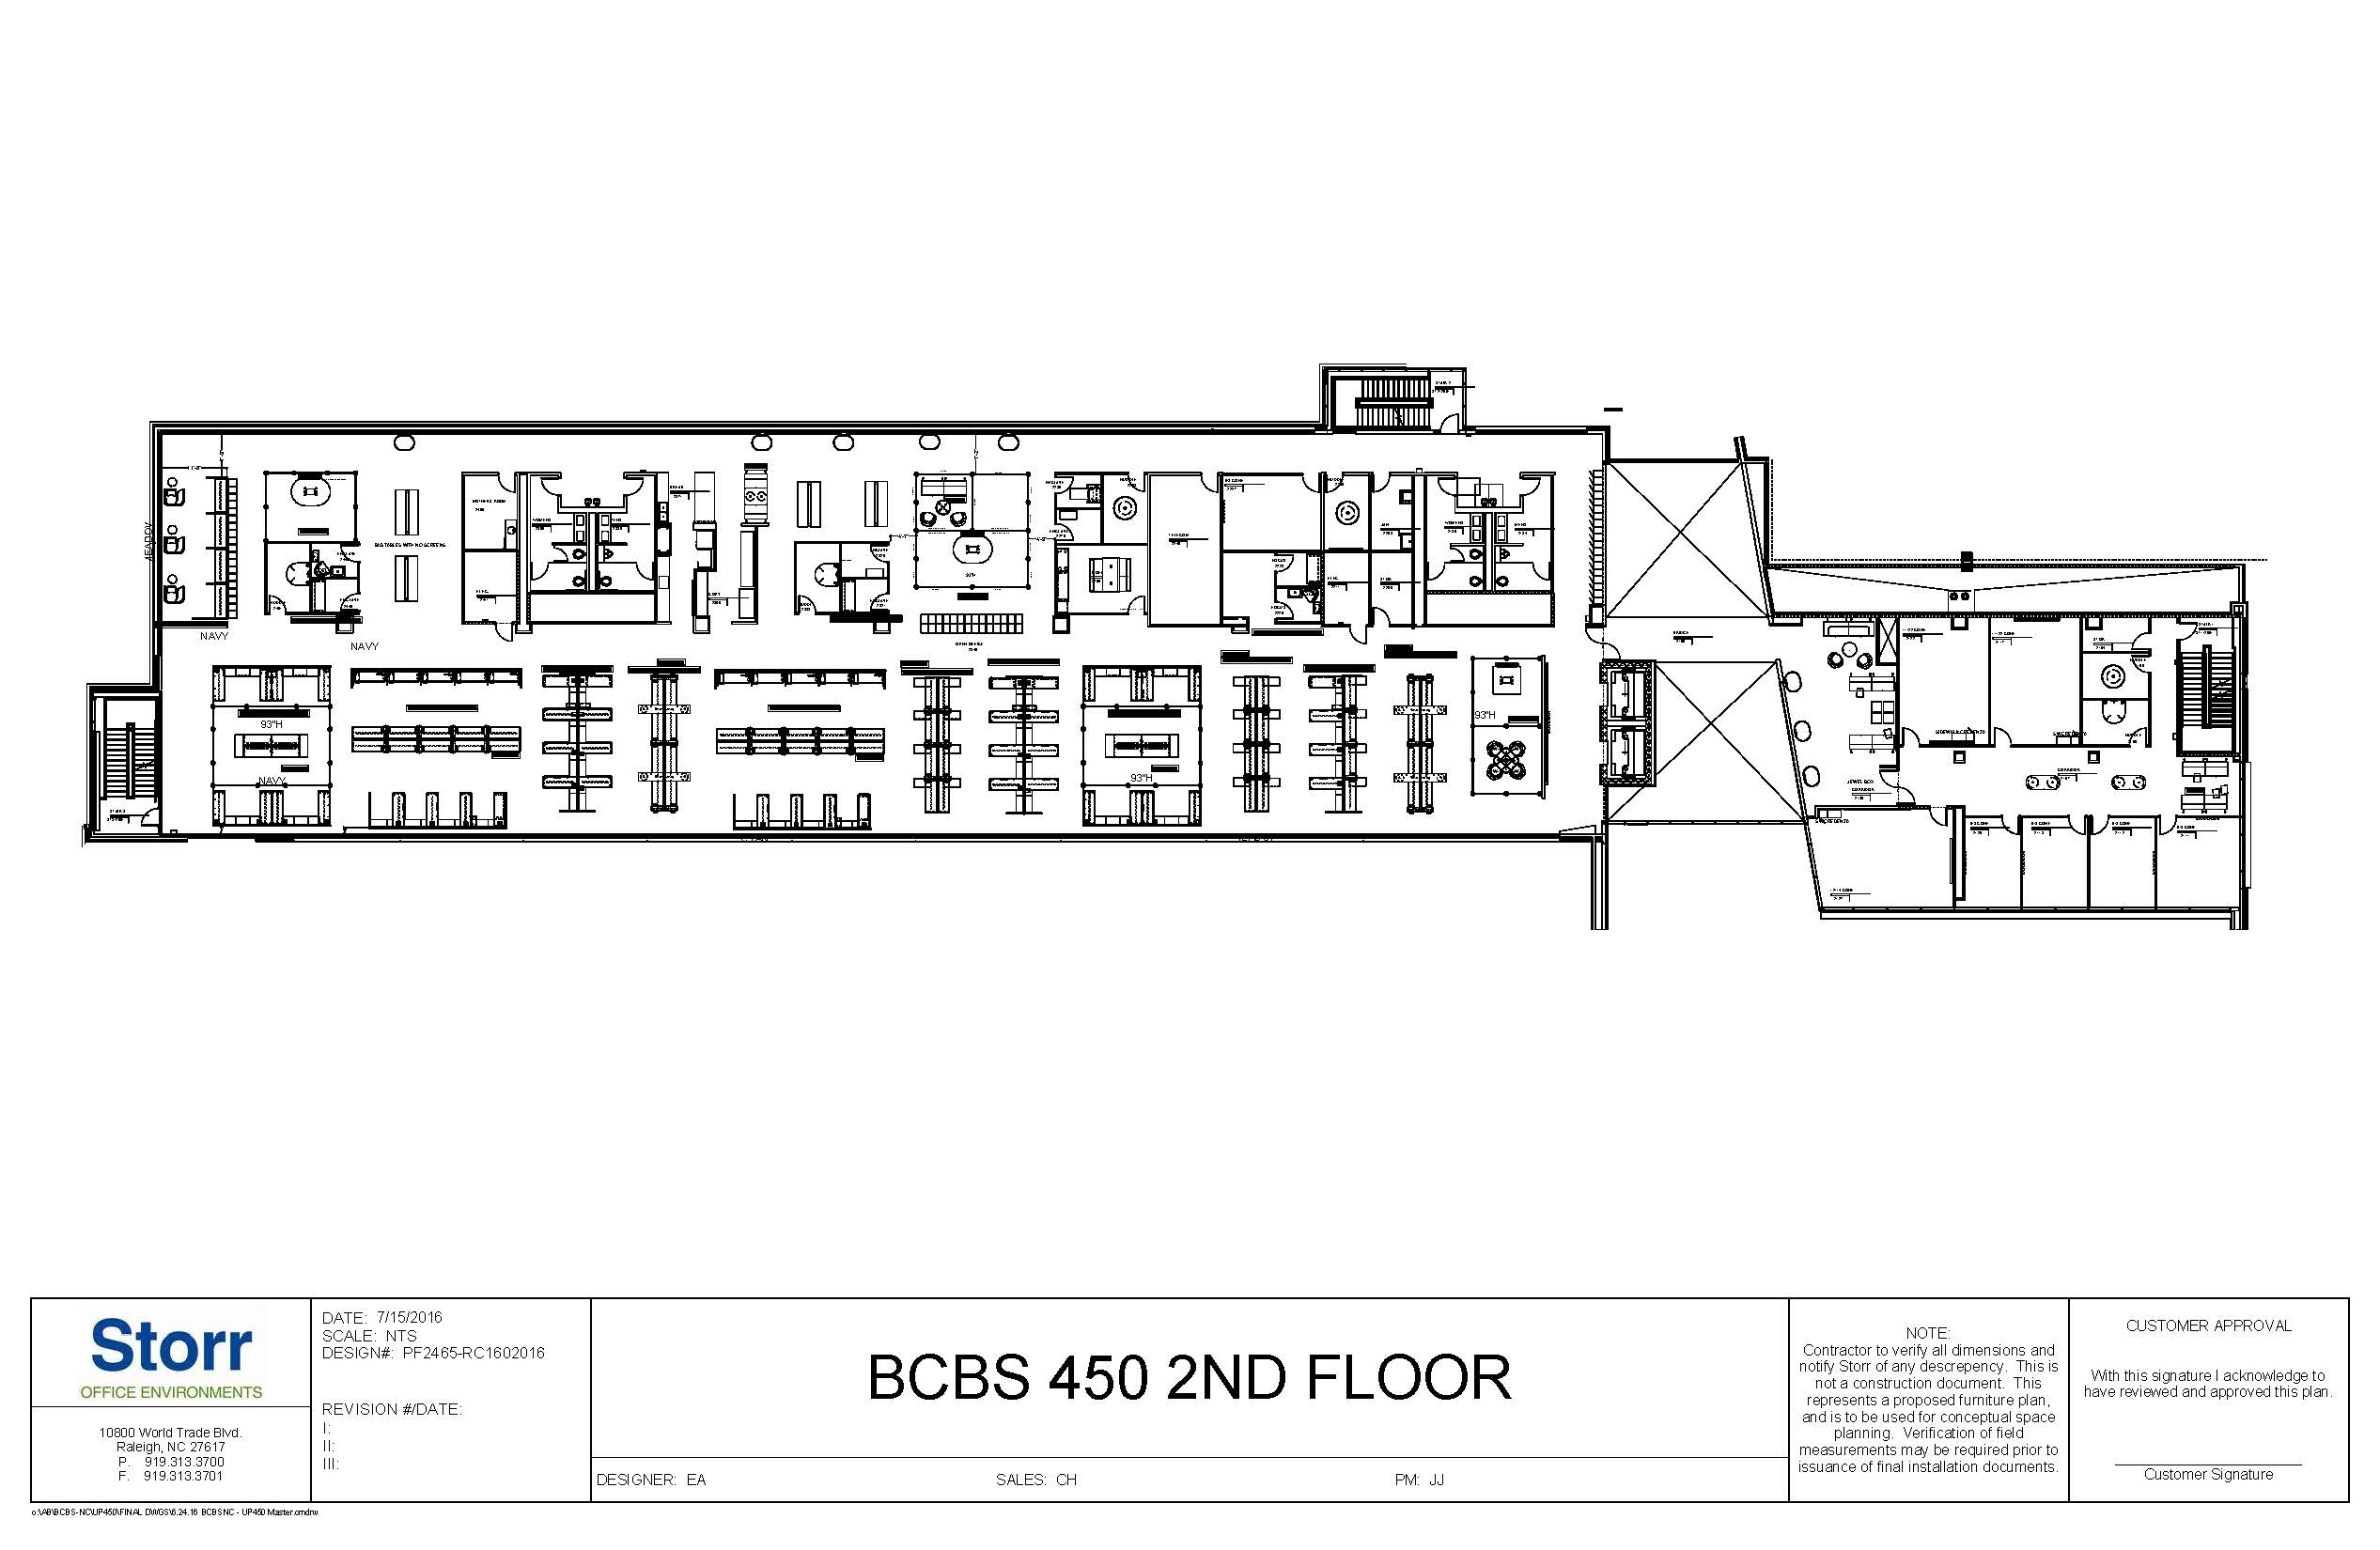 BLDG 450 2ND FLR OVERALL PLAN